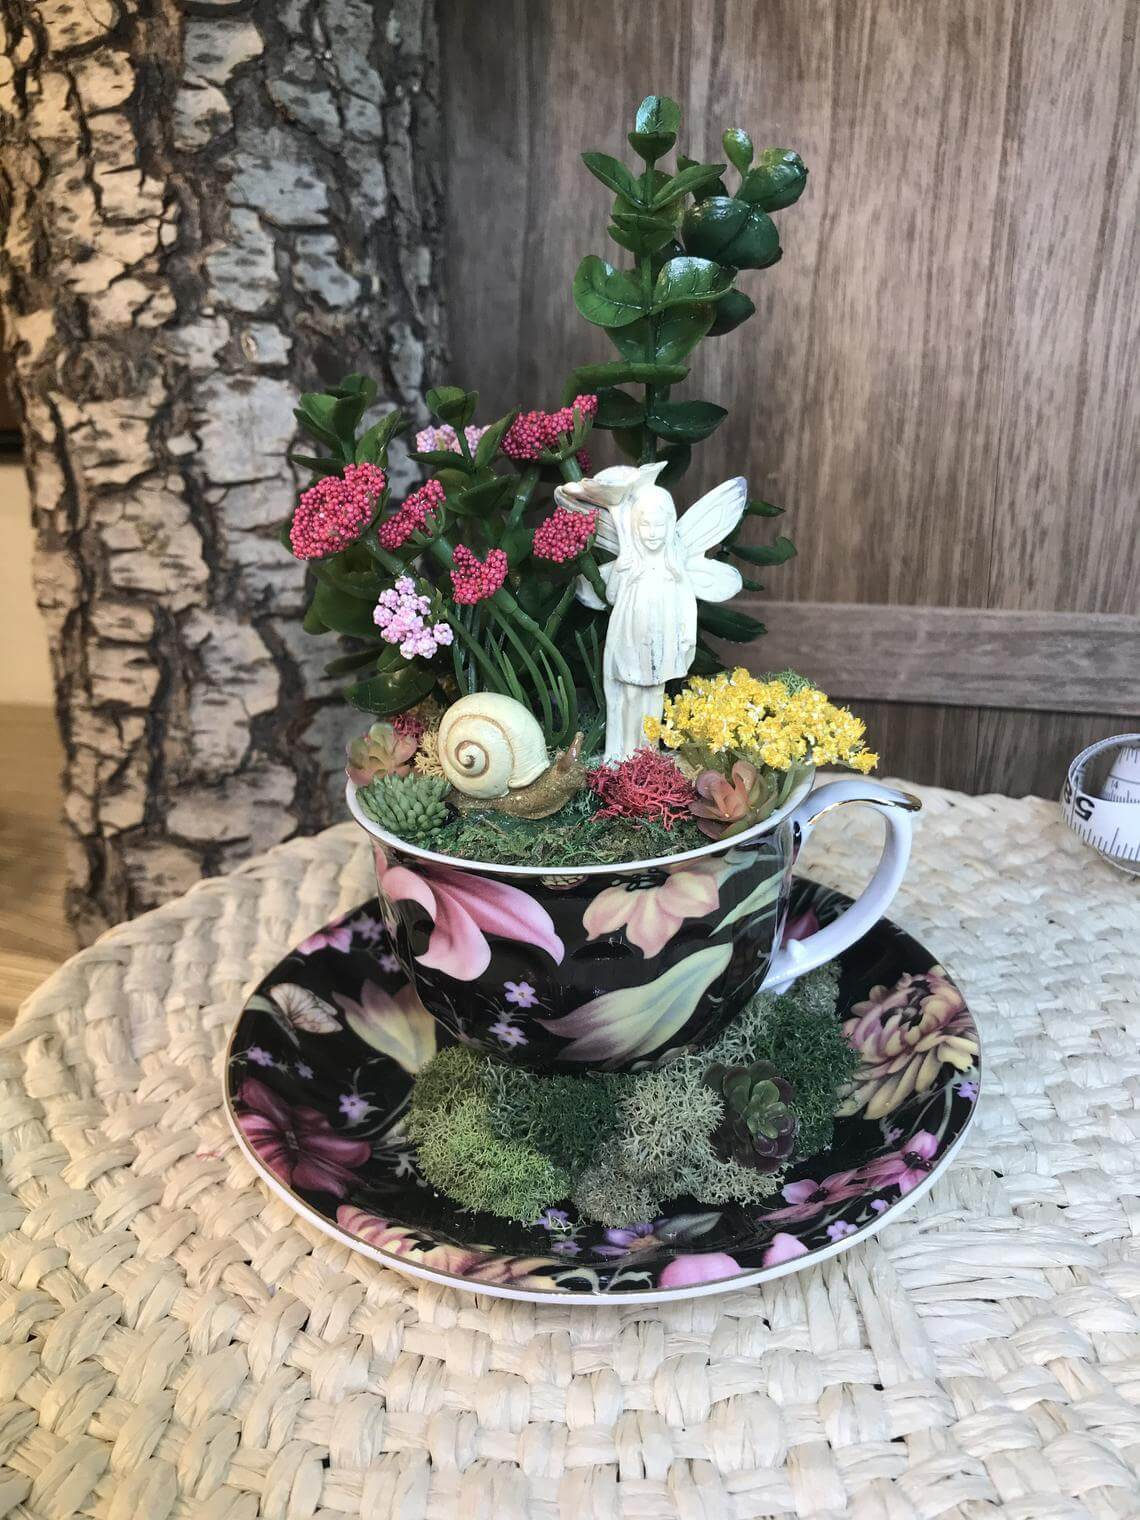 Miniature Fairy and Snail Statue Teacup Garden